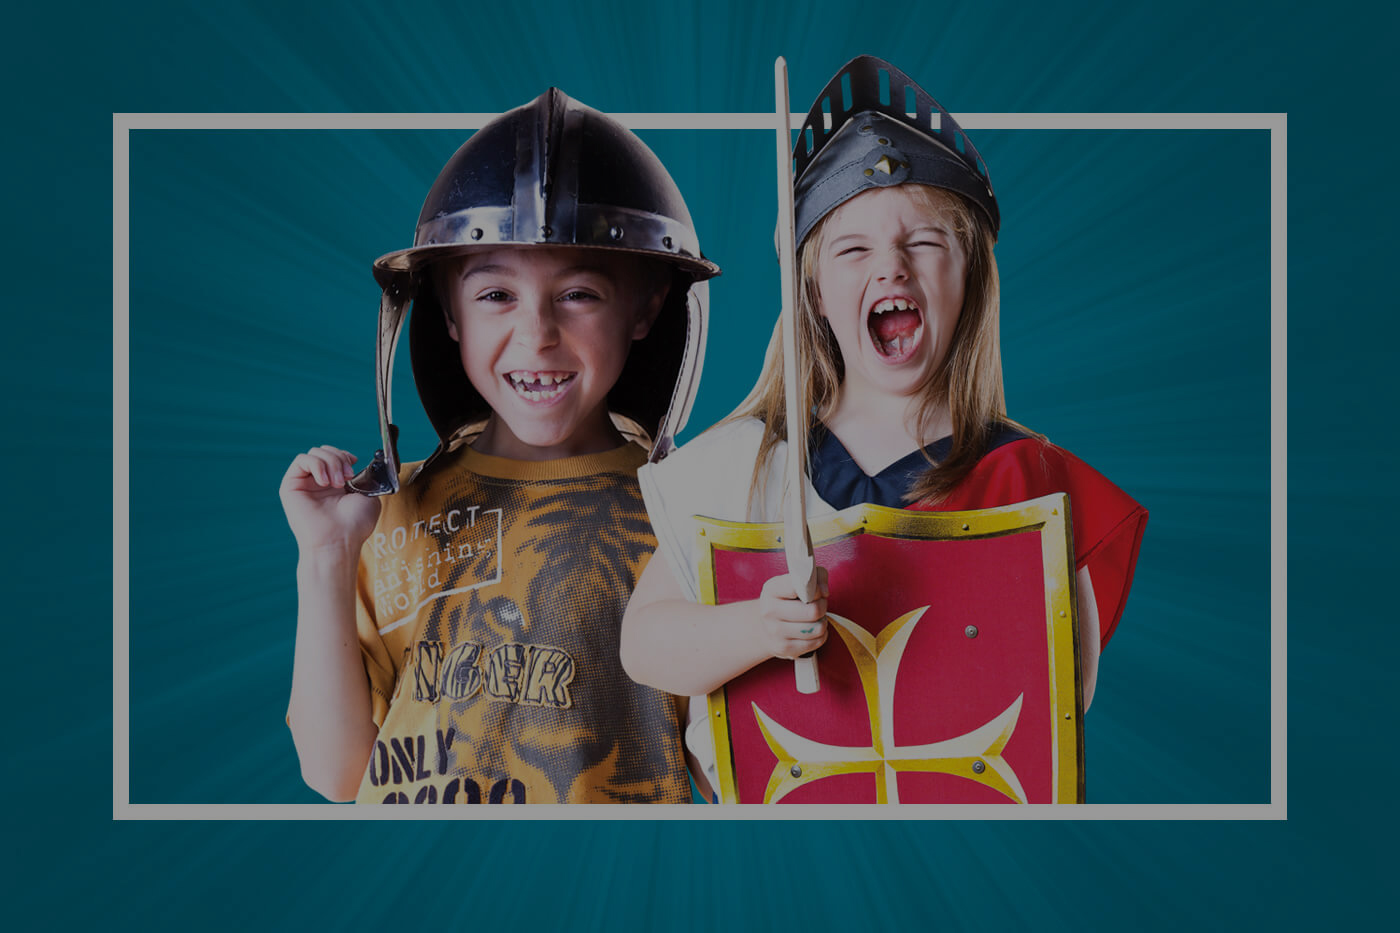 excited children in play armour let out a battle cry